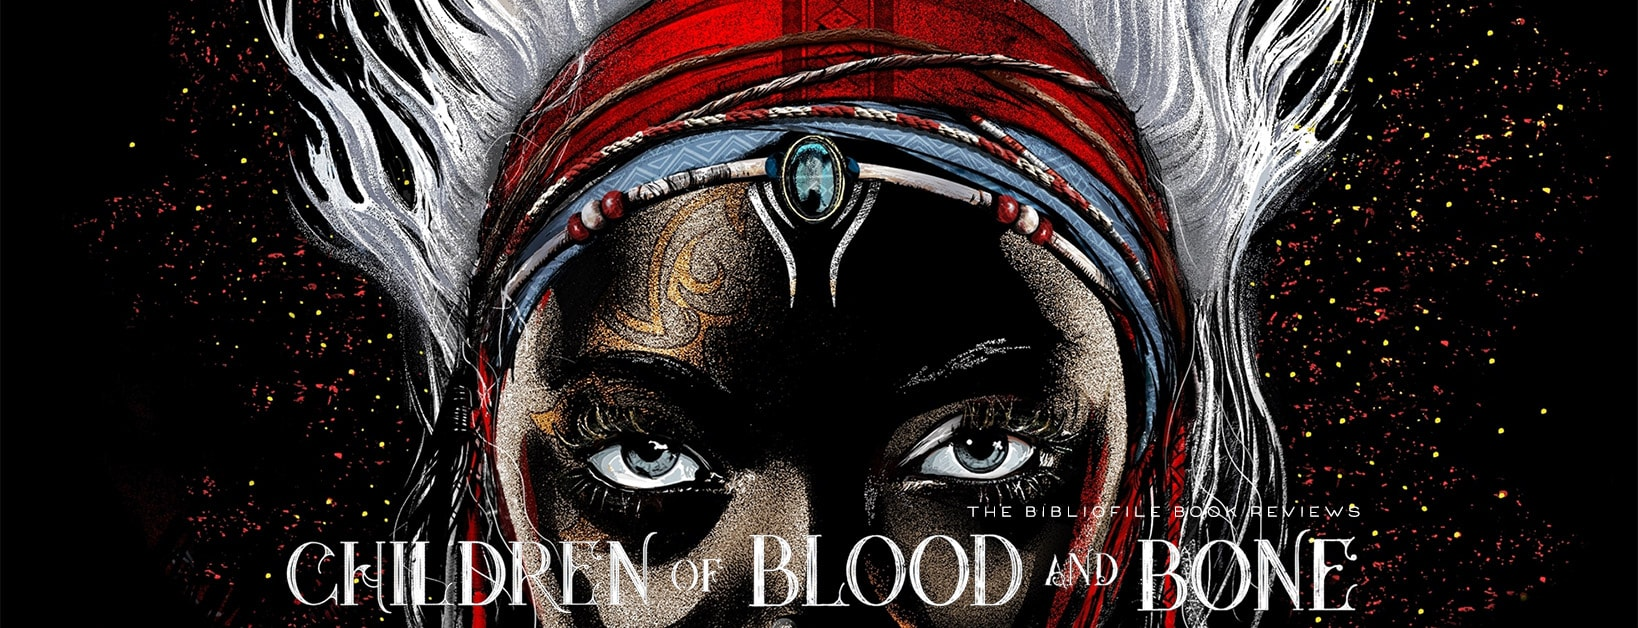 Children of Blood and Bone Orisha Review Book Plot Summary Ending Spoilers